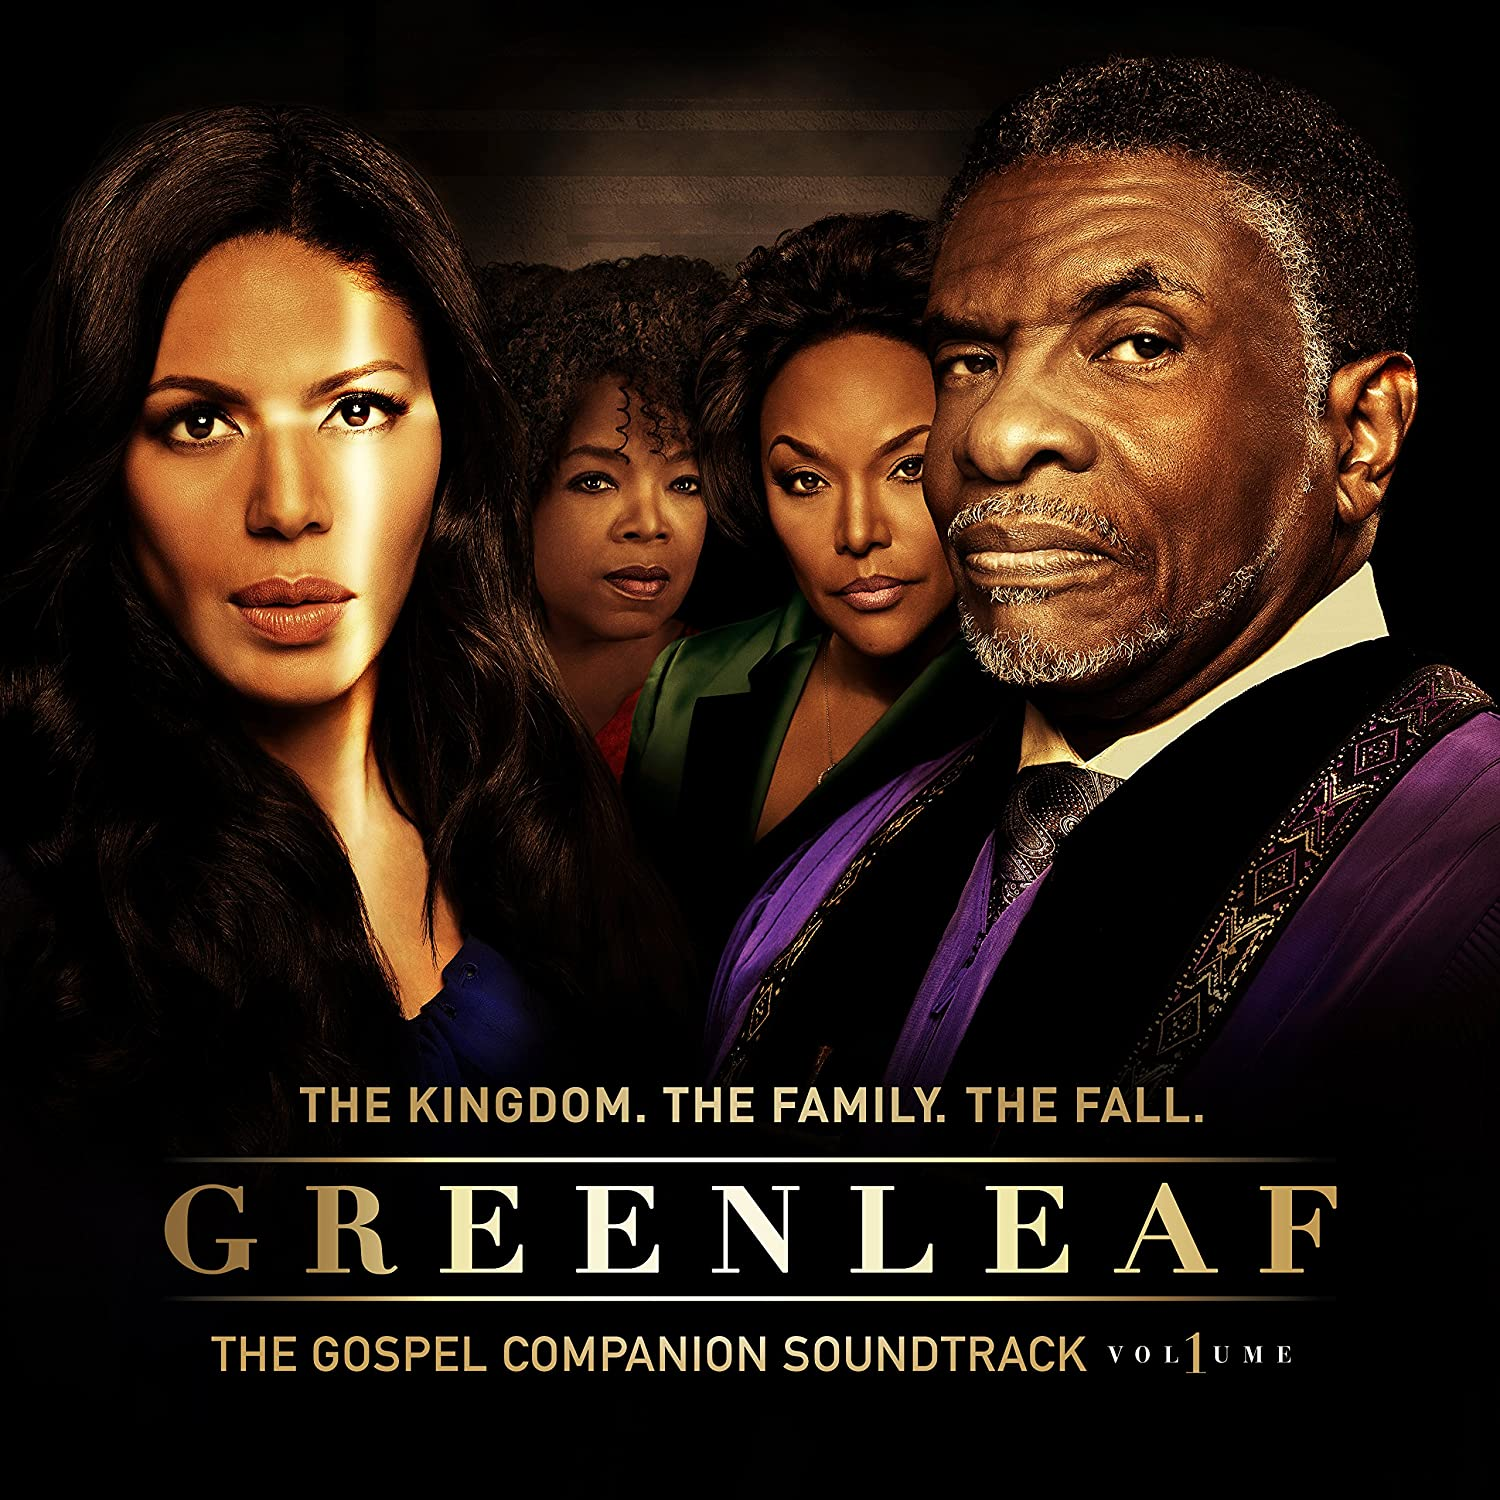 Buy greenleaf gospel companion soundtrack volume 1 online at low buy greenleaf gospel companion soundtrack volume 1 online at low prices in india amazon music store amazon ccuart Image collections